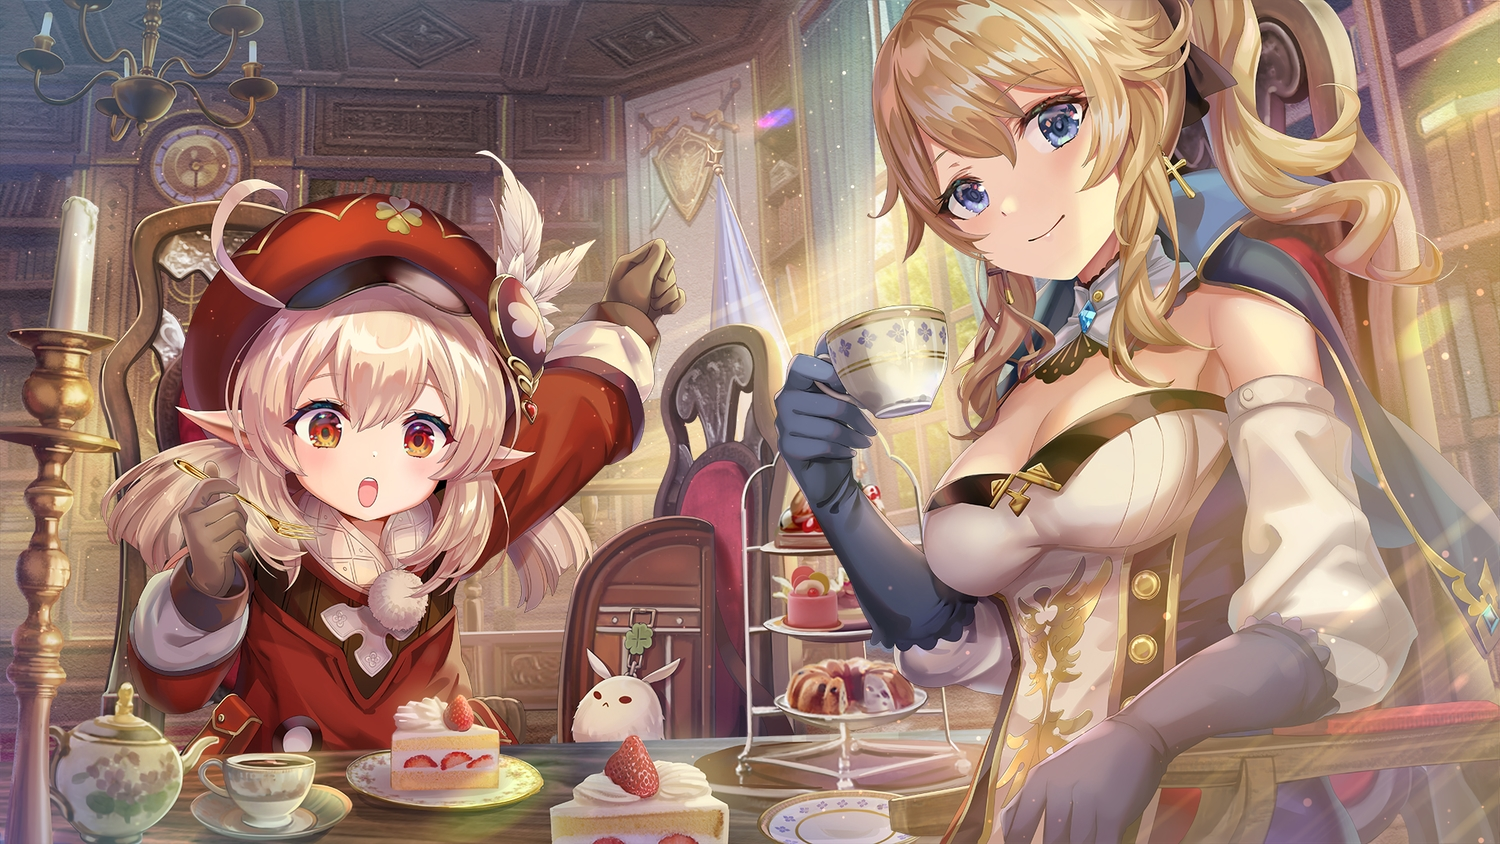 2girls blonde_hair blue_eyes bow breasts cake cape cleavage cross drink elbow_gloves food fruit genshin_impact gloves hat jean_gunnhildr klee_(genshin_impact) loli pointed_ears ponytail red_eyes short_hair strawberry torino_akua twintails